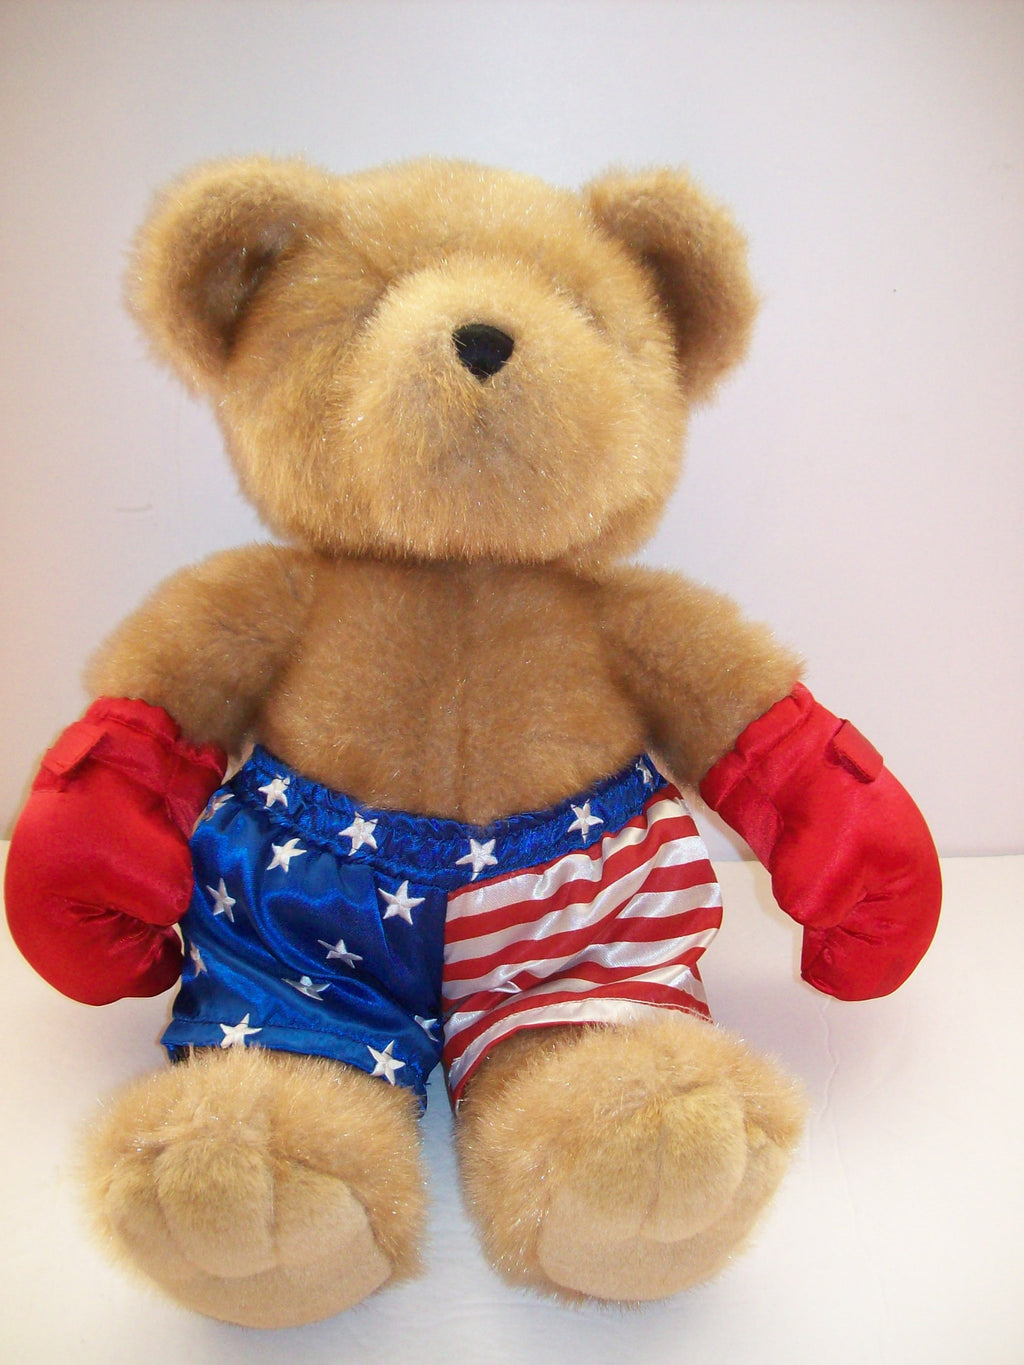 Dillard's Boxing Teddy Bear Plush - We Got Character